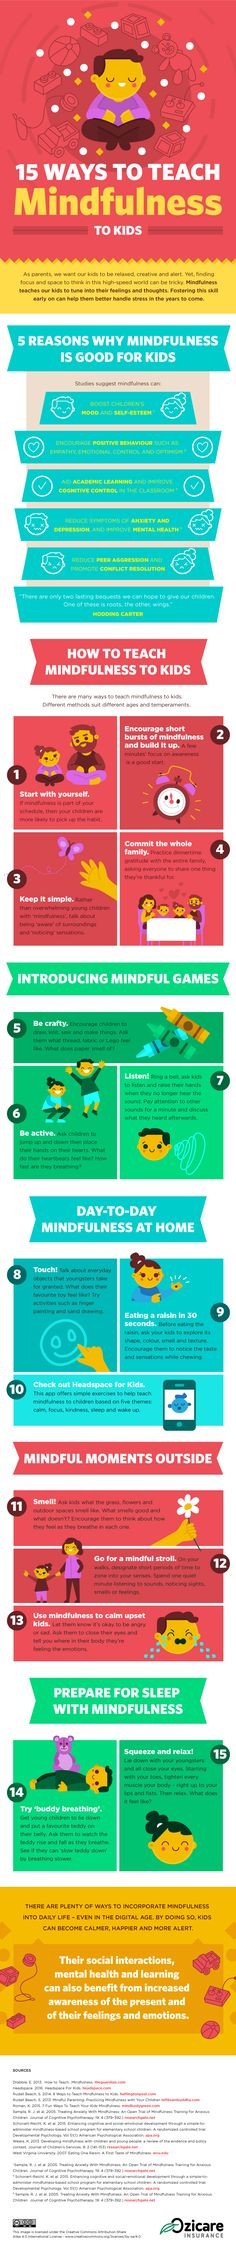 15 Fantastic Ways to Teach Mindfulness to Kids is part of Mindfulness for kids - Children who practice mindfulness have better moods and have higher selfesteem Here are 15 mindfulness activities for kids Mindfulness For Kids, Mindfulness Activities, Teaching Mindfulness, Mindfulness Training, Coping Skills, Social Skills, Social Work, Social Emotional Learning, Yoga For Kids